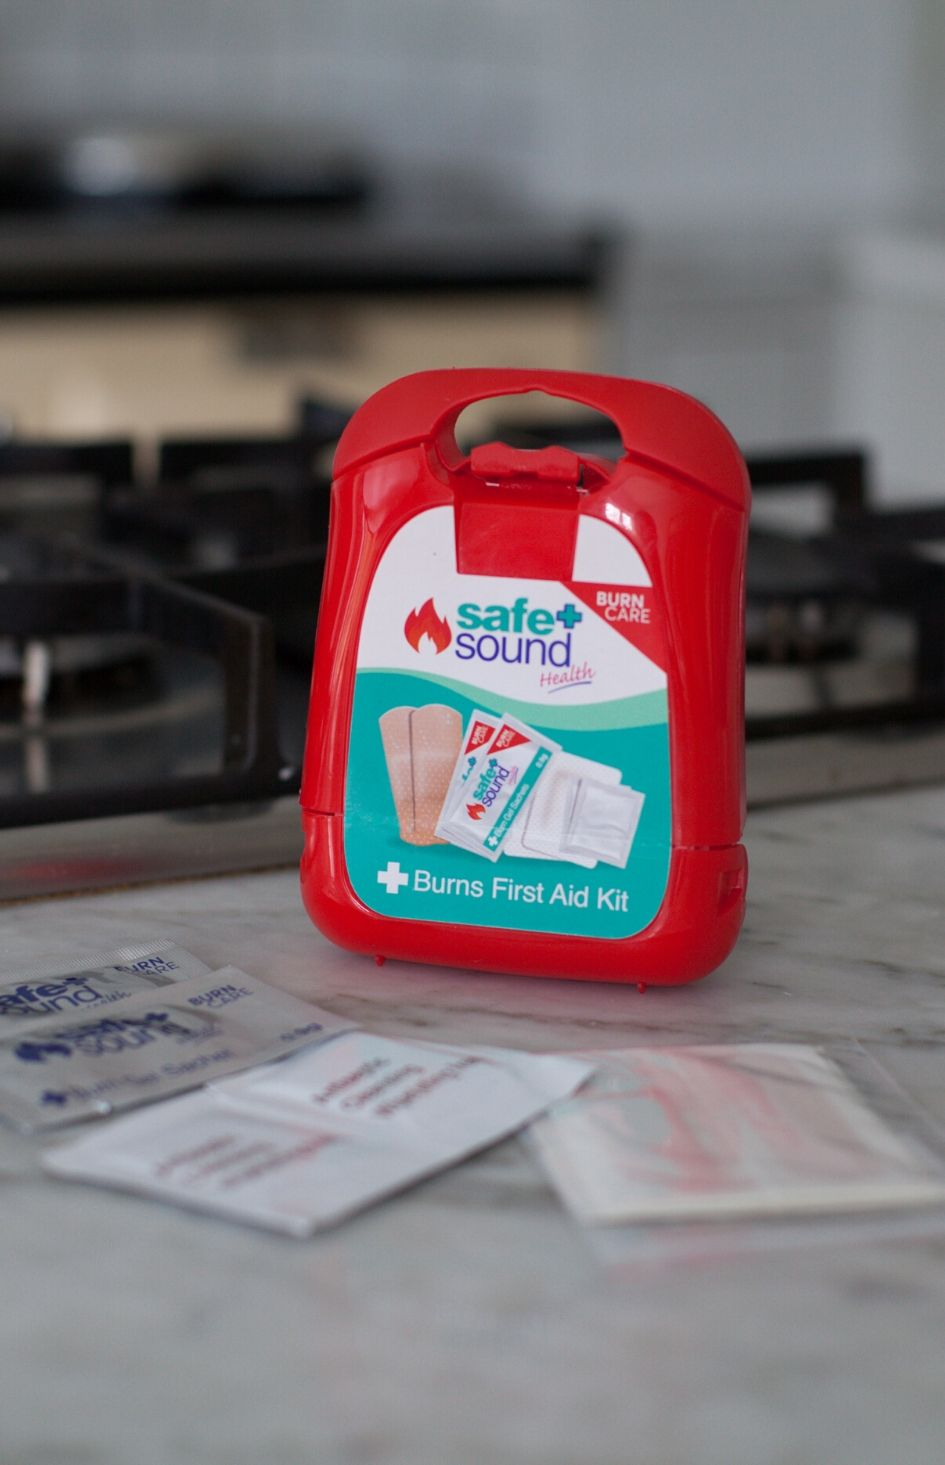 treat burn's and scalds at home with Safe and Sound Health burn's first aid kit